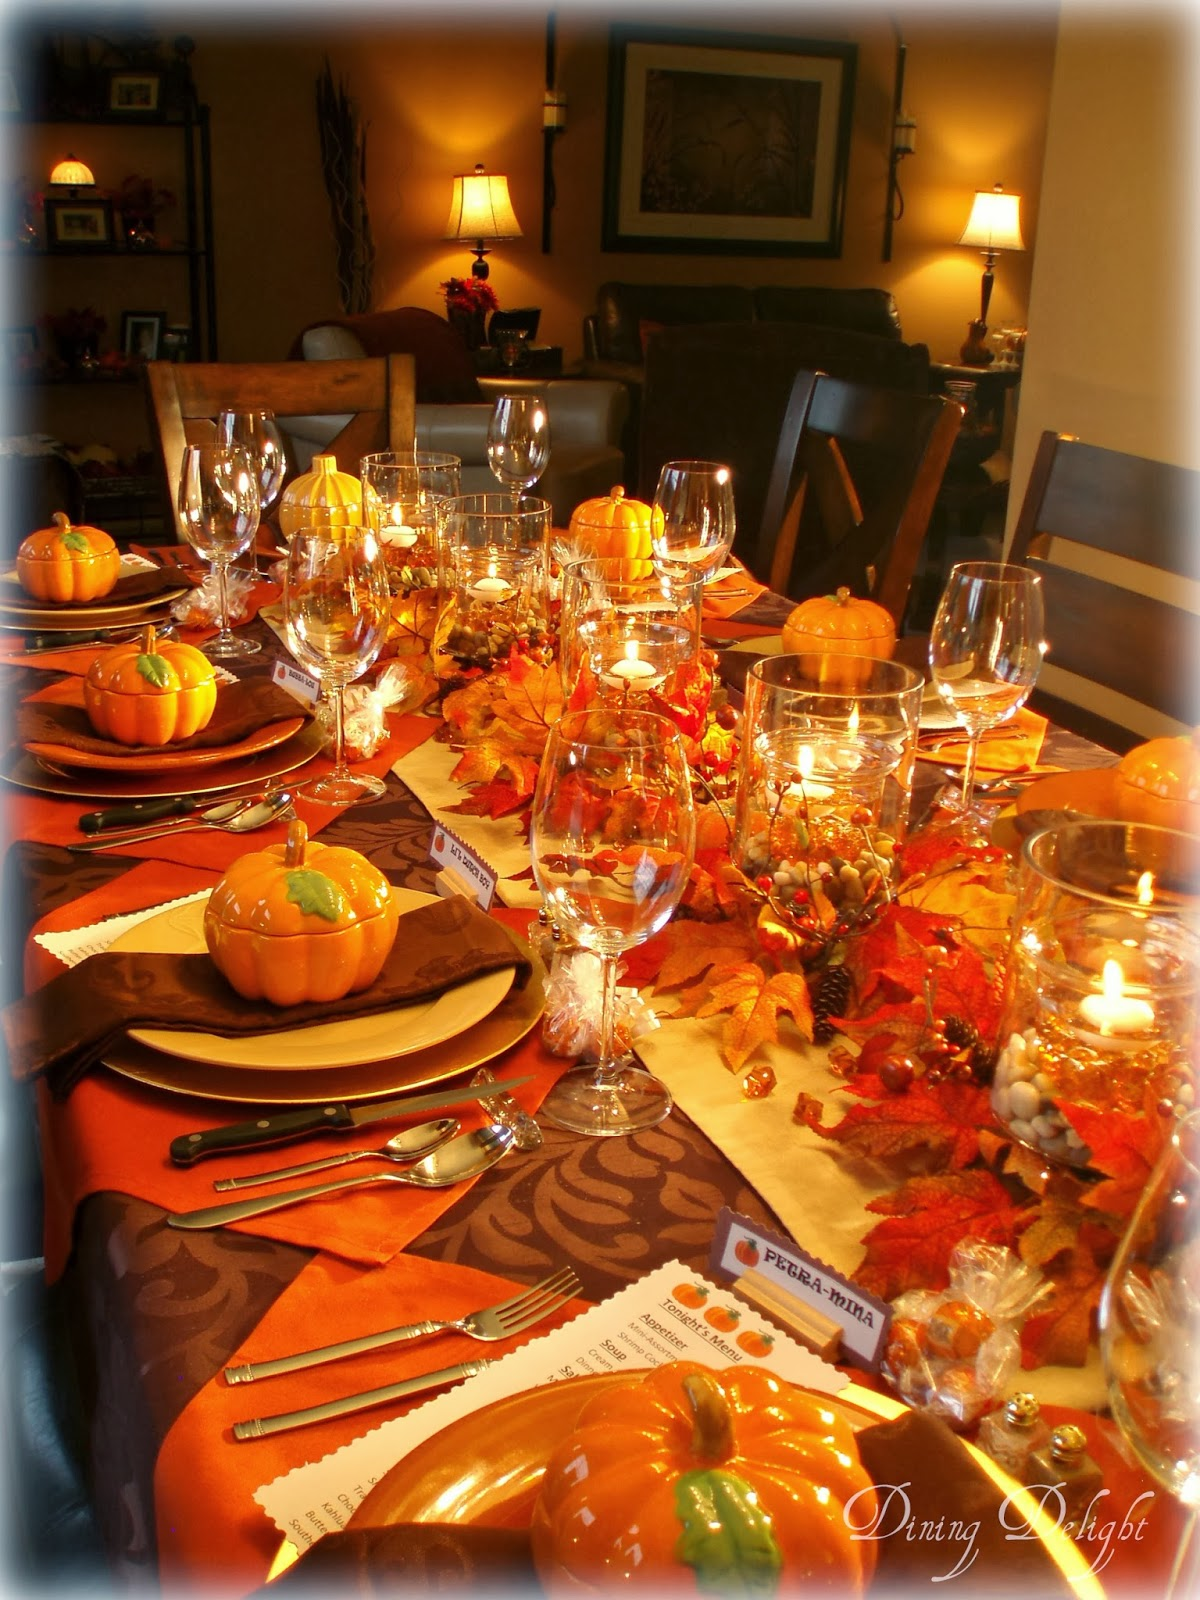 Dining Delight: Fall Dinner Party for Ten